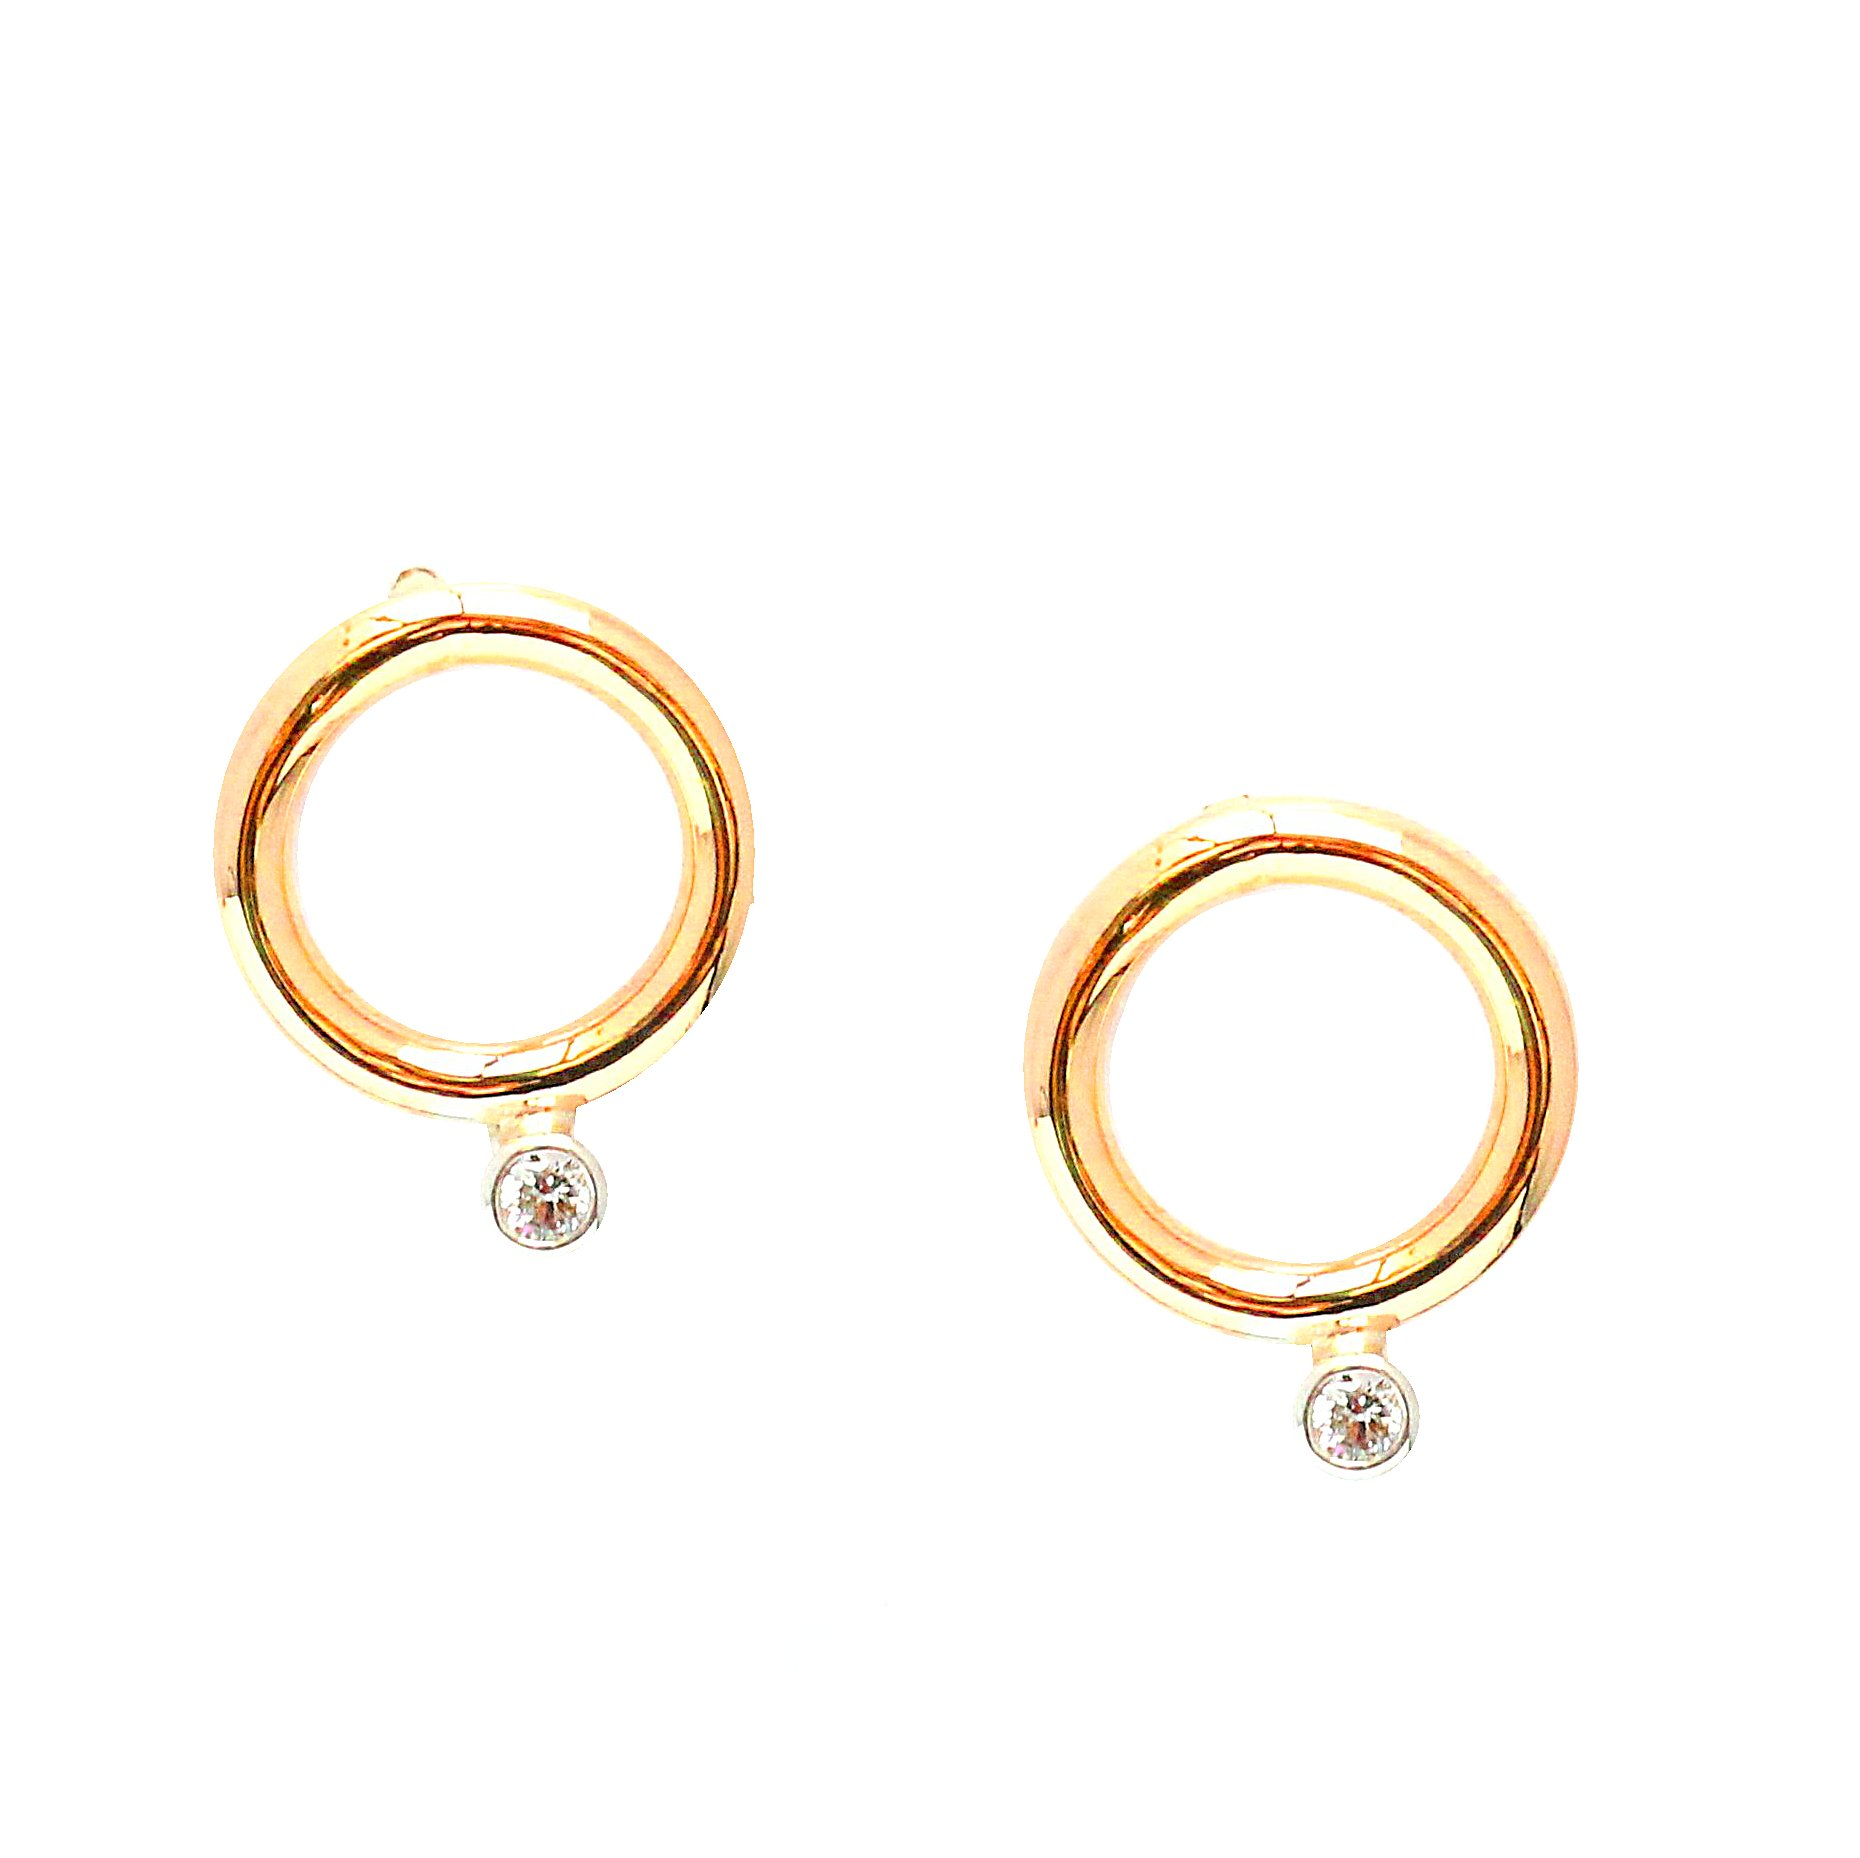 earring images double bridge circle earrings jewelry ben jeweler